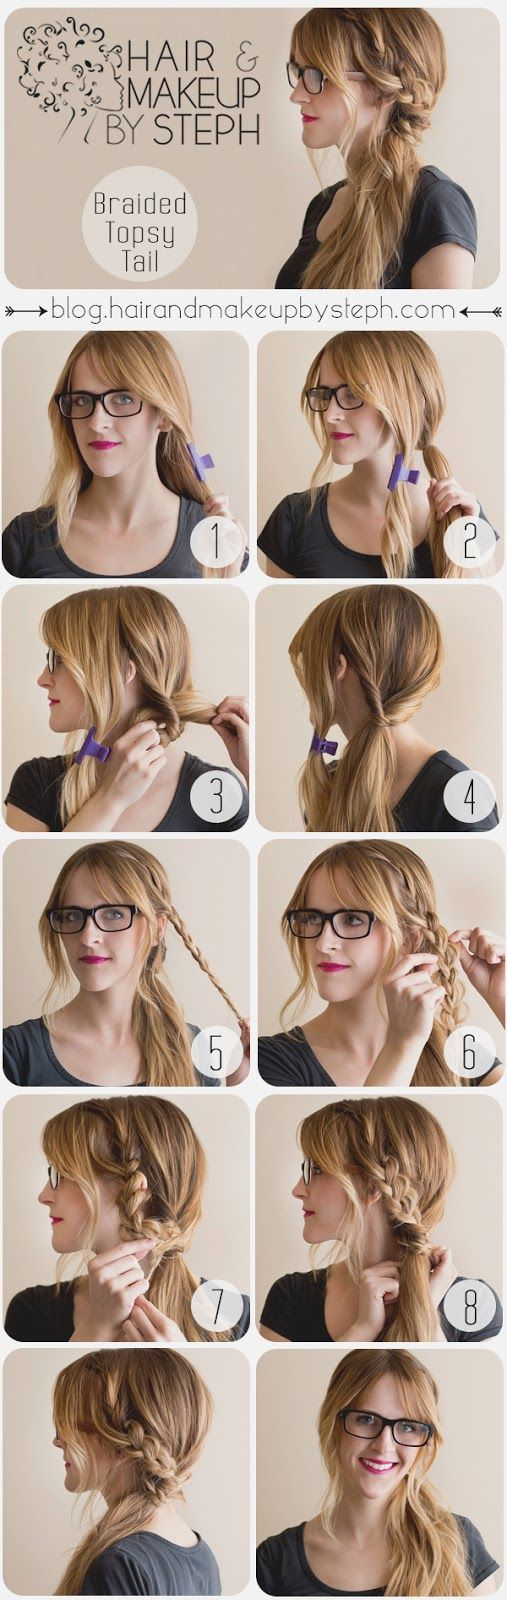 Pin by tímea lajkó on hajas pinterest simple hairstyles hair